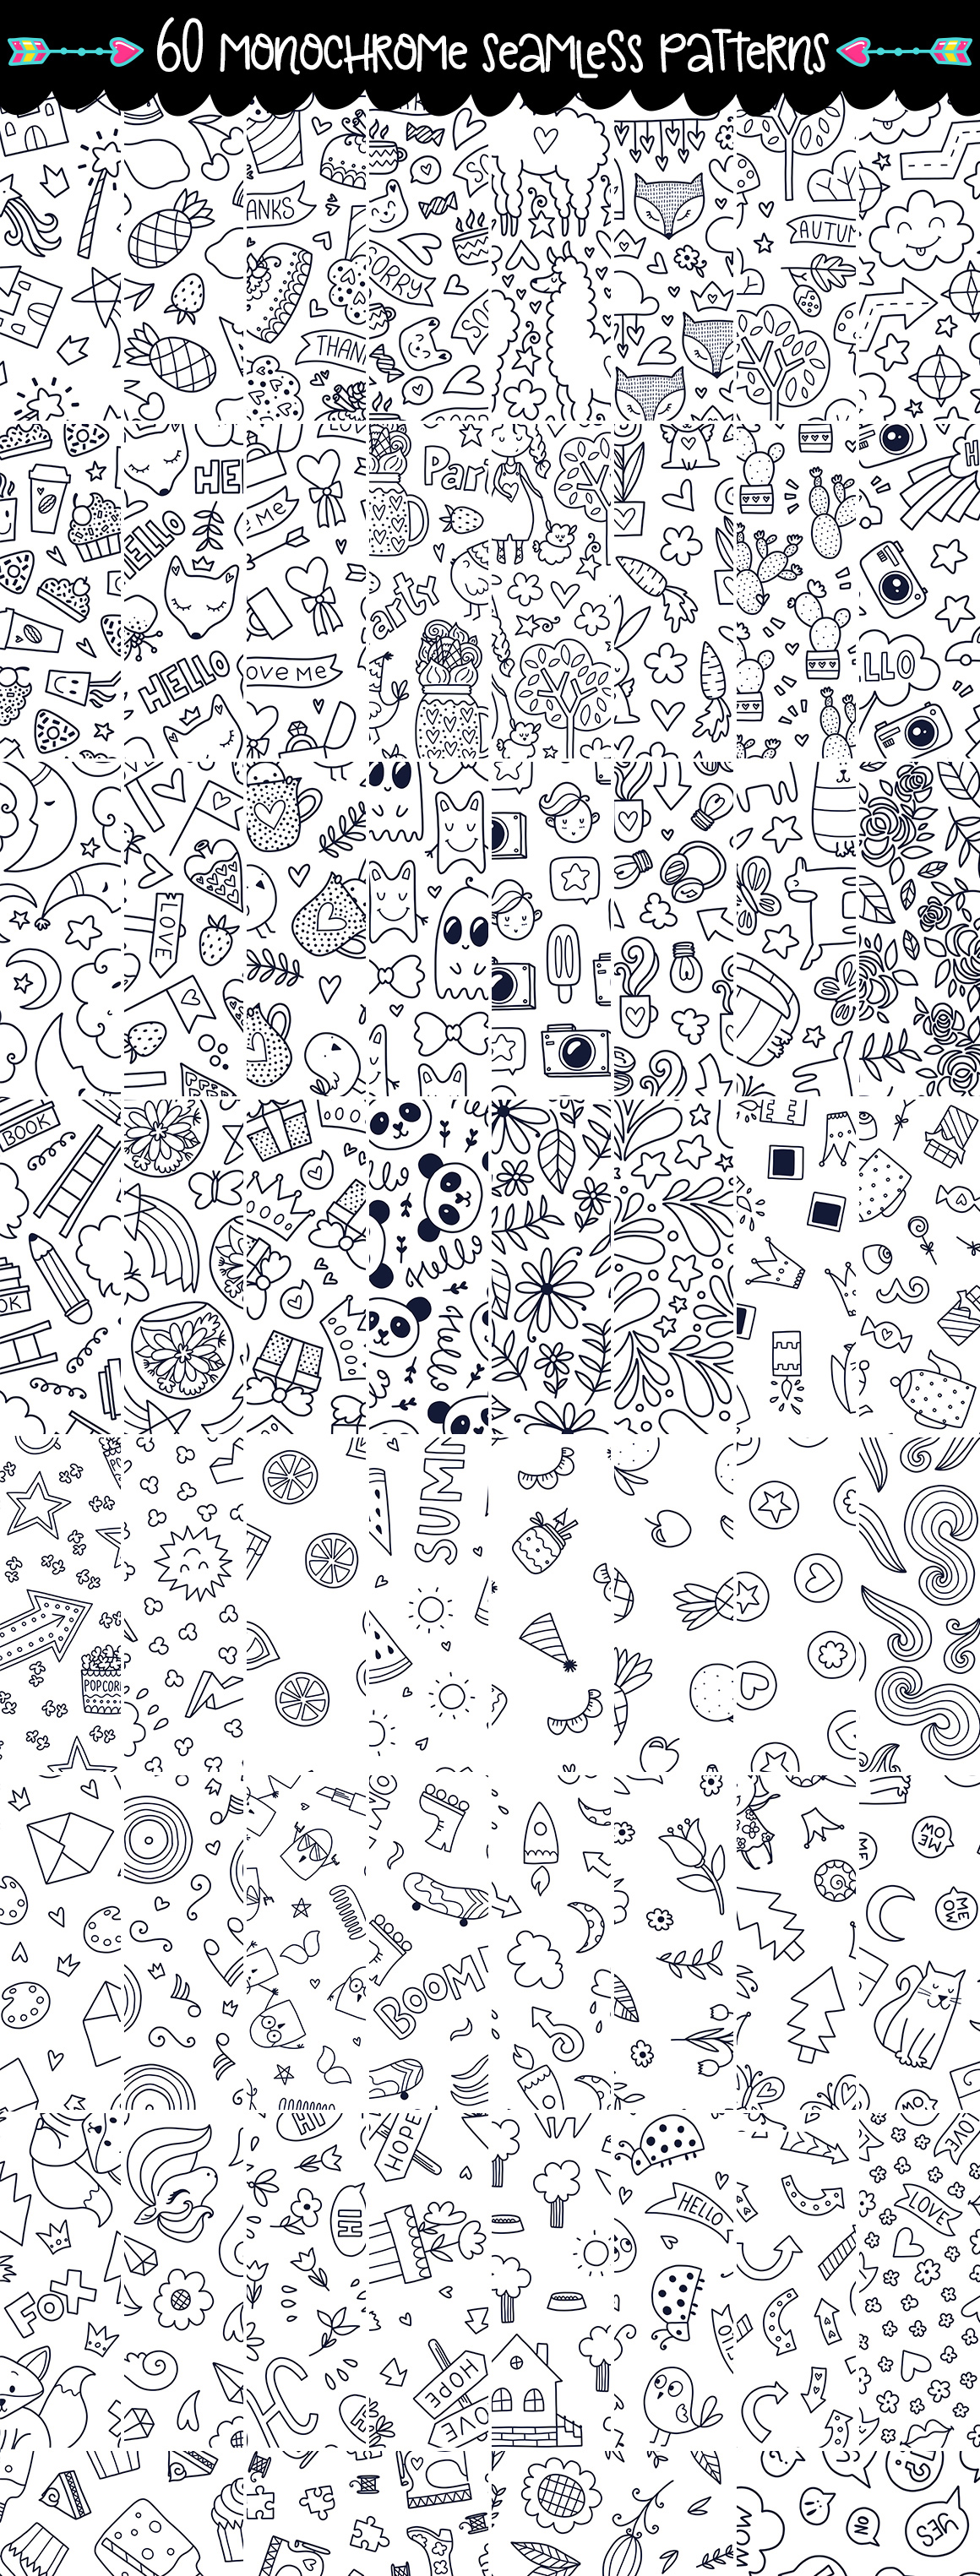 645 Doodles and Patterns.